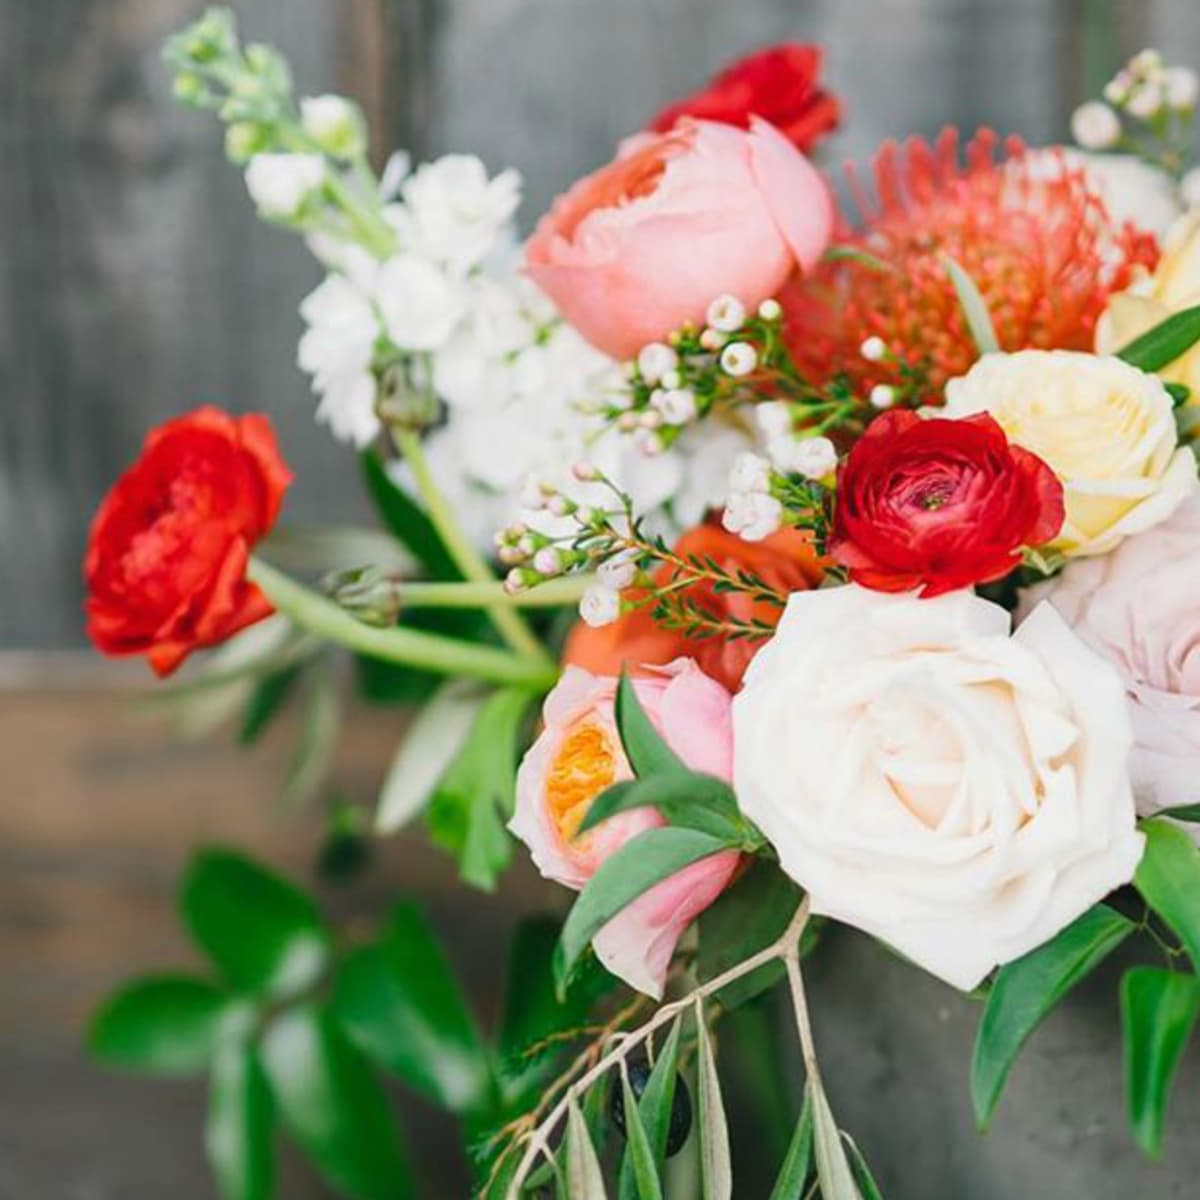 Gypsy Floral and Events red flower arrangement